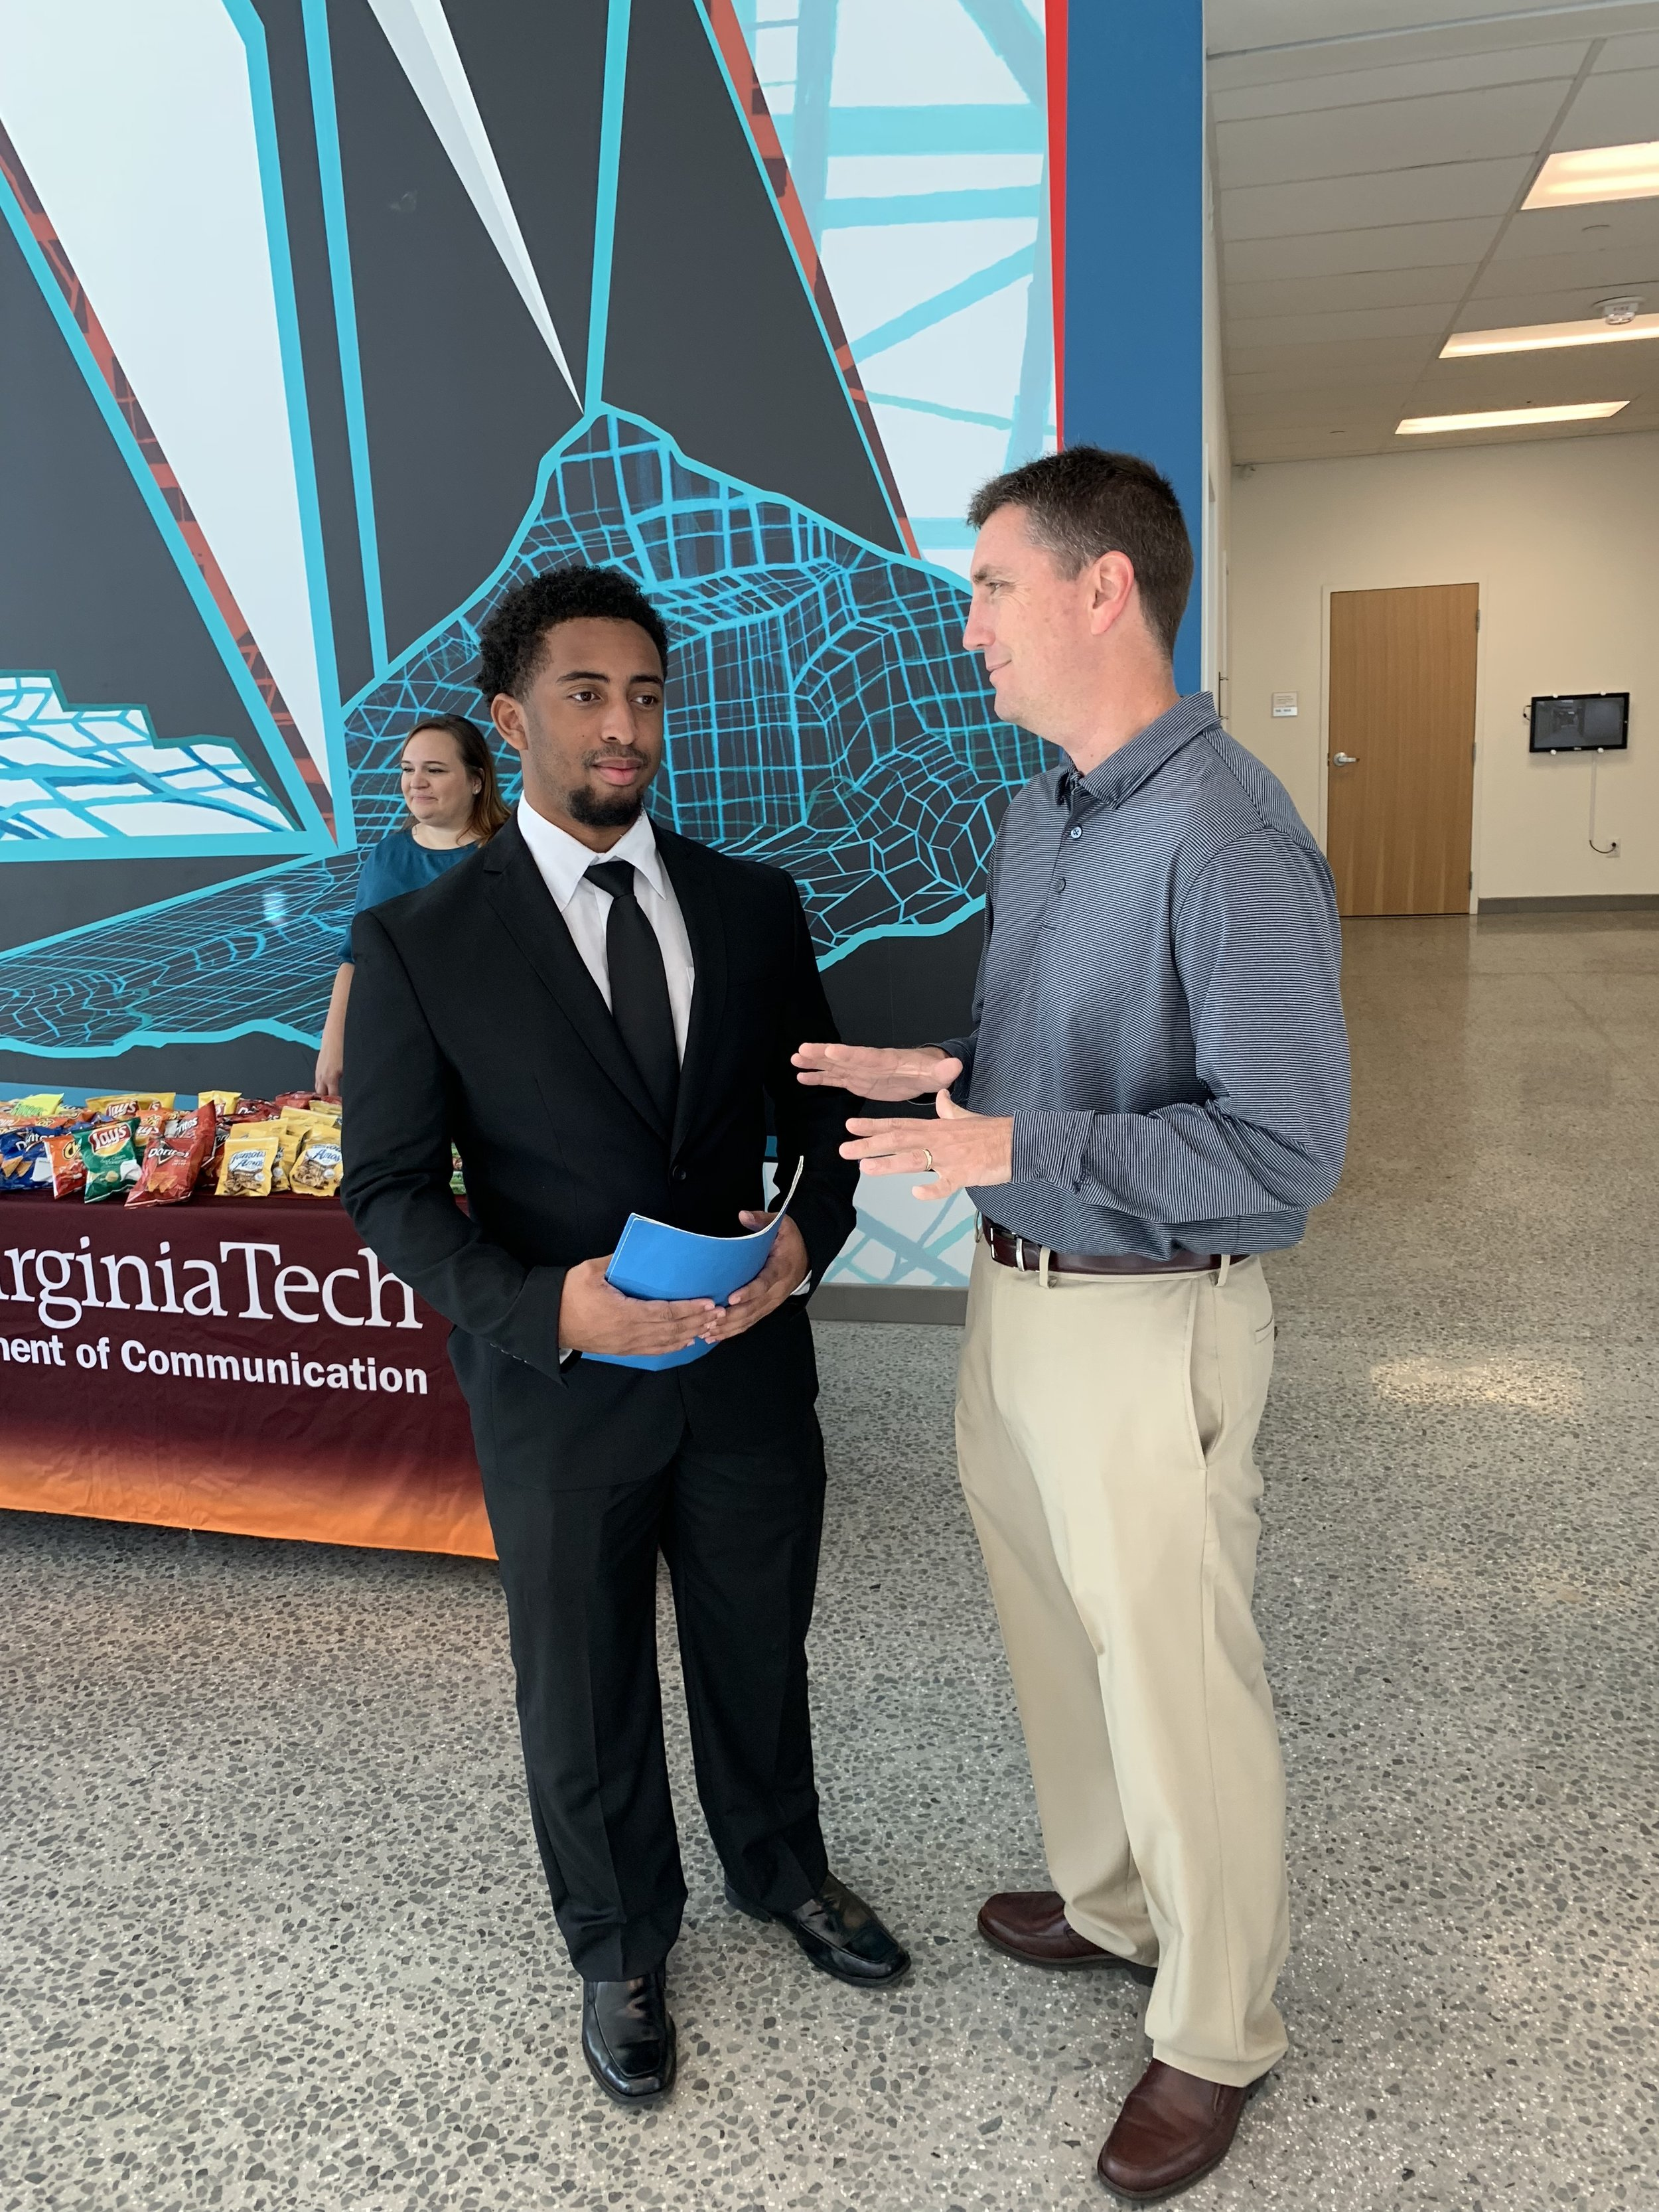 Sports Director Travis Wells of WDBJ-TV in Roanoke, Virginia visits with a Virginia Tech student at the Virginia Tech Communication Department 2018 Career Fair.